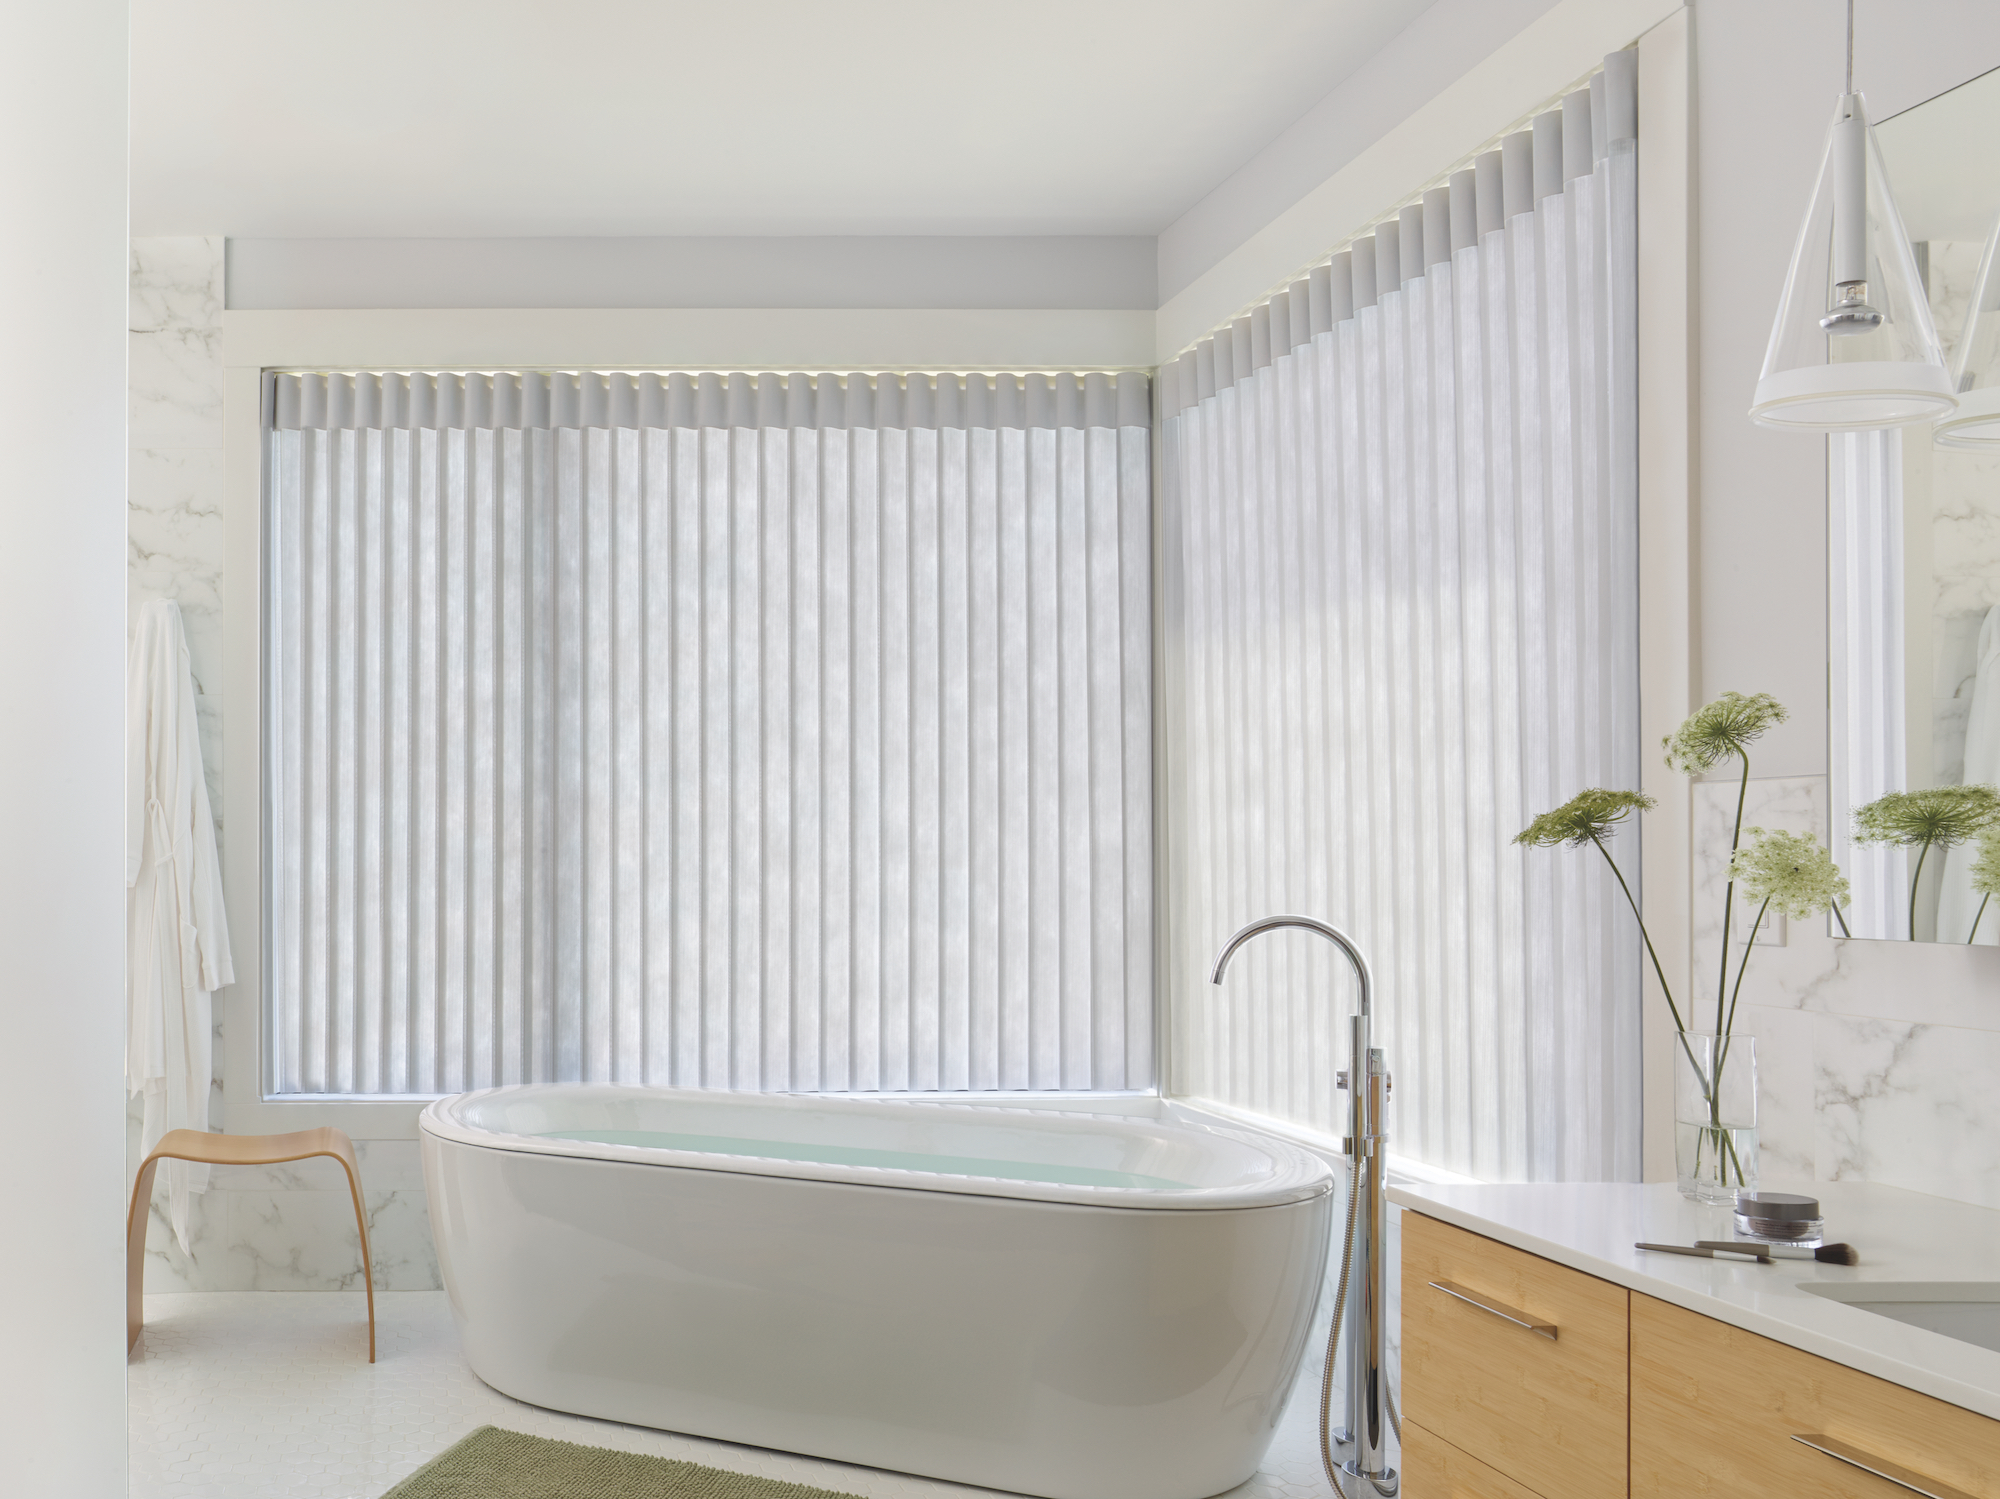 luminette privacy sheers on large windows in bathroom